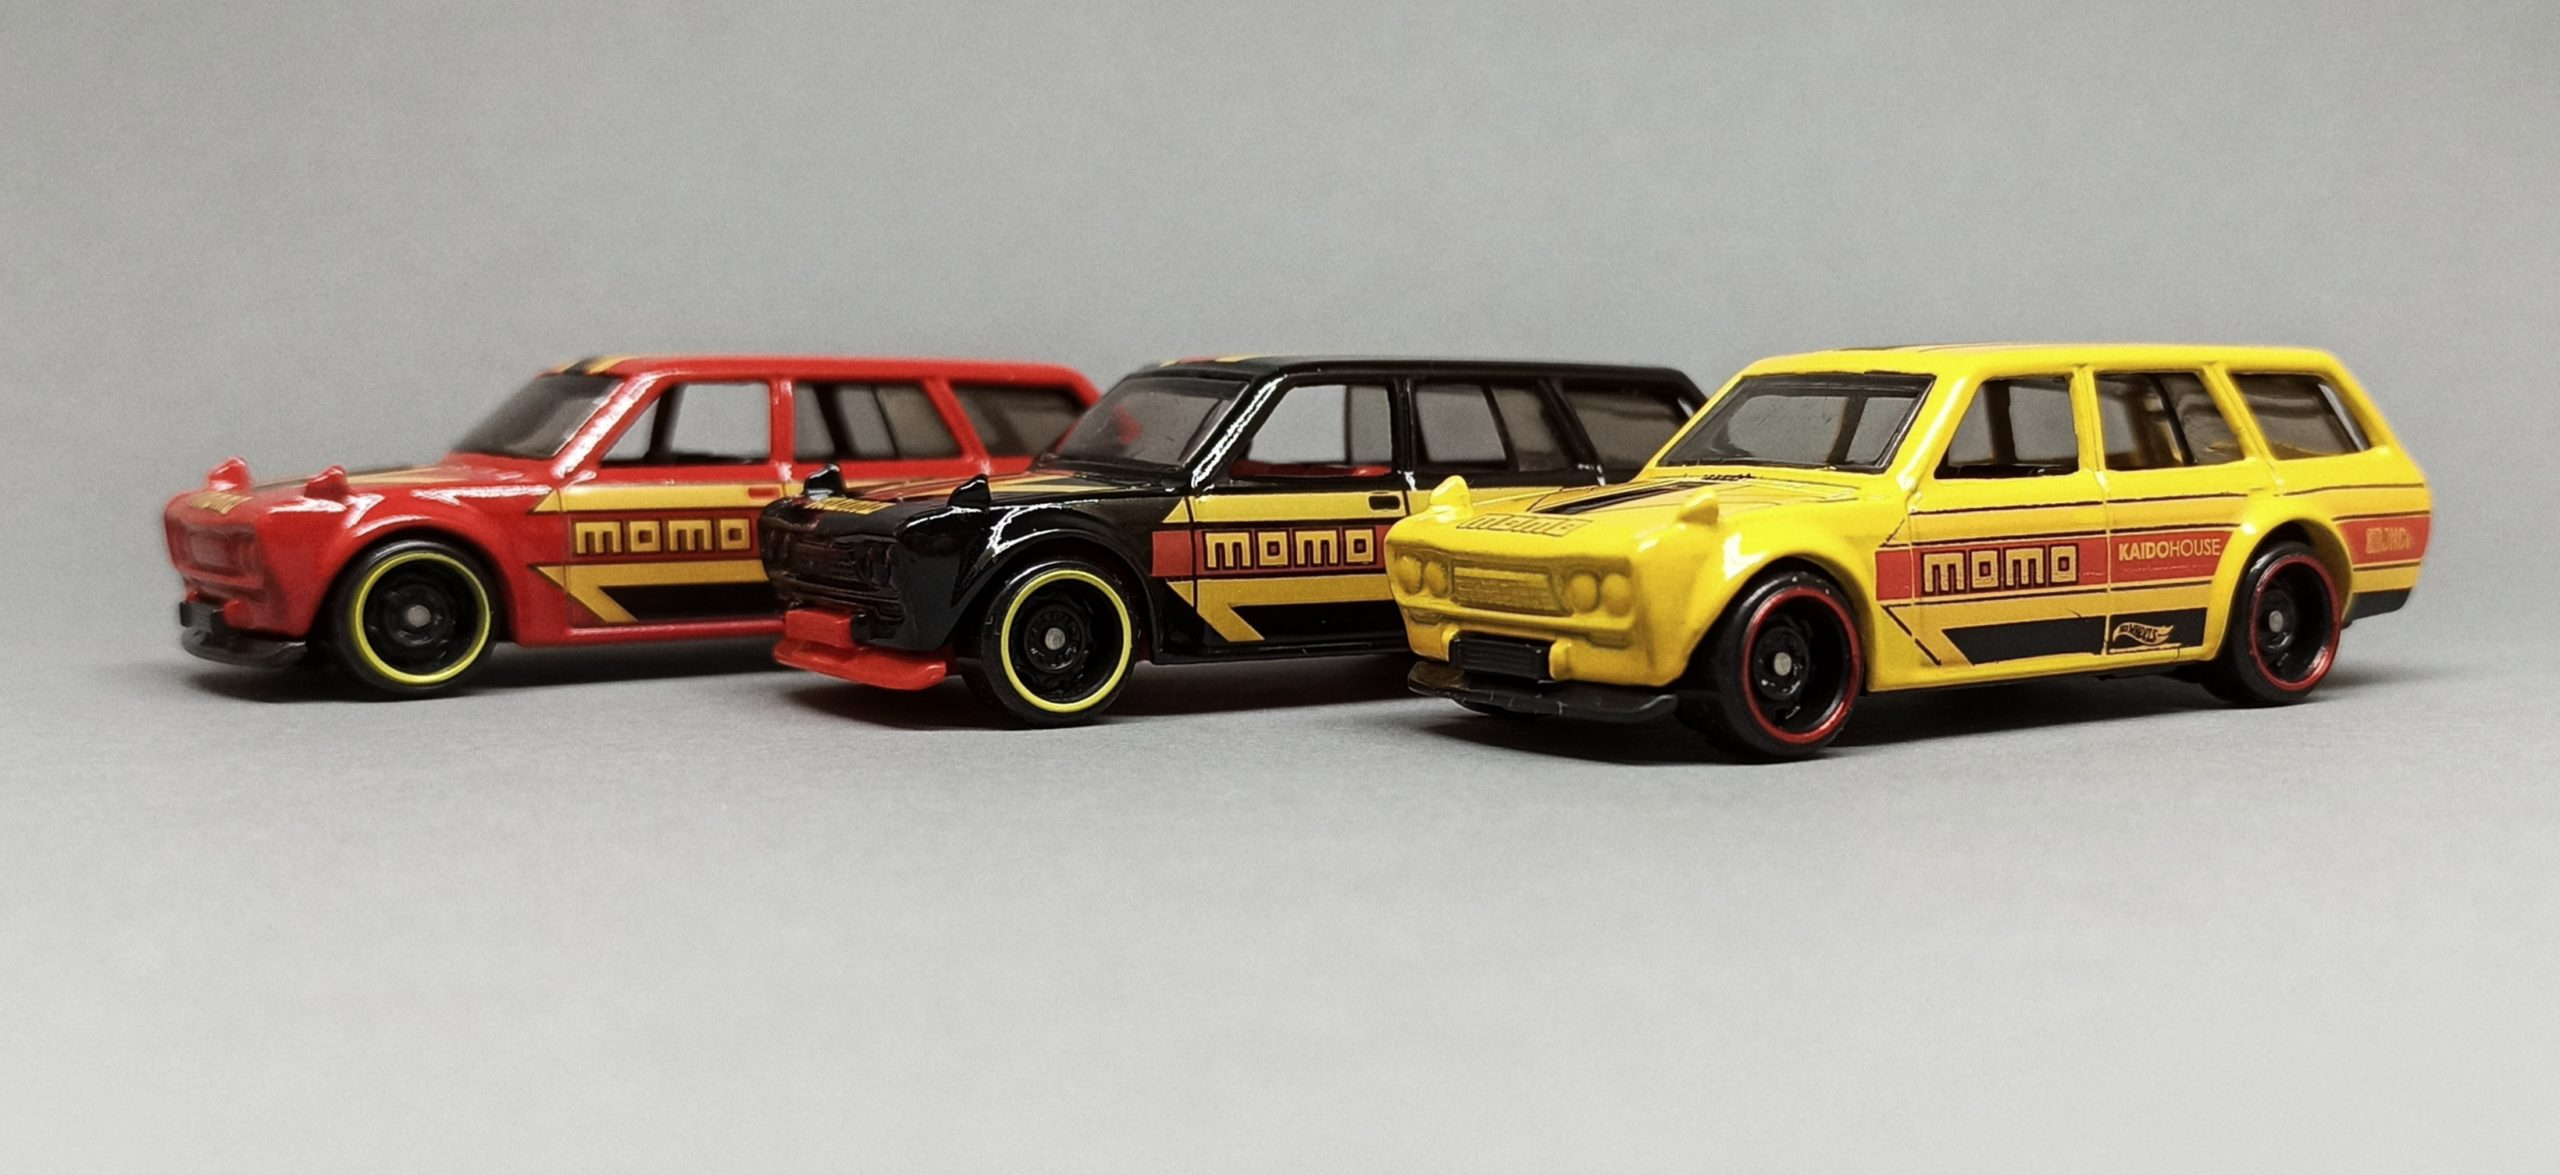 Hot Wheels '71 Datsun Bluebird 510 Wagon (GHG57) 2020 (146/250) HW Speed Graphics (8/10) black red yellow (Kroger Exclusive) collection